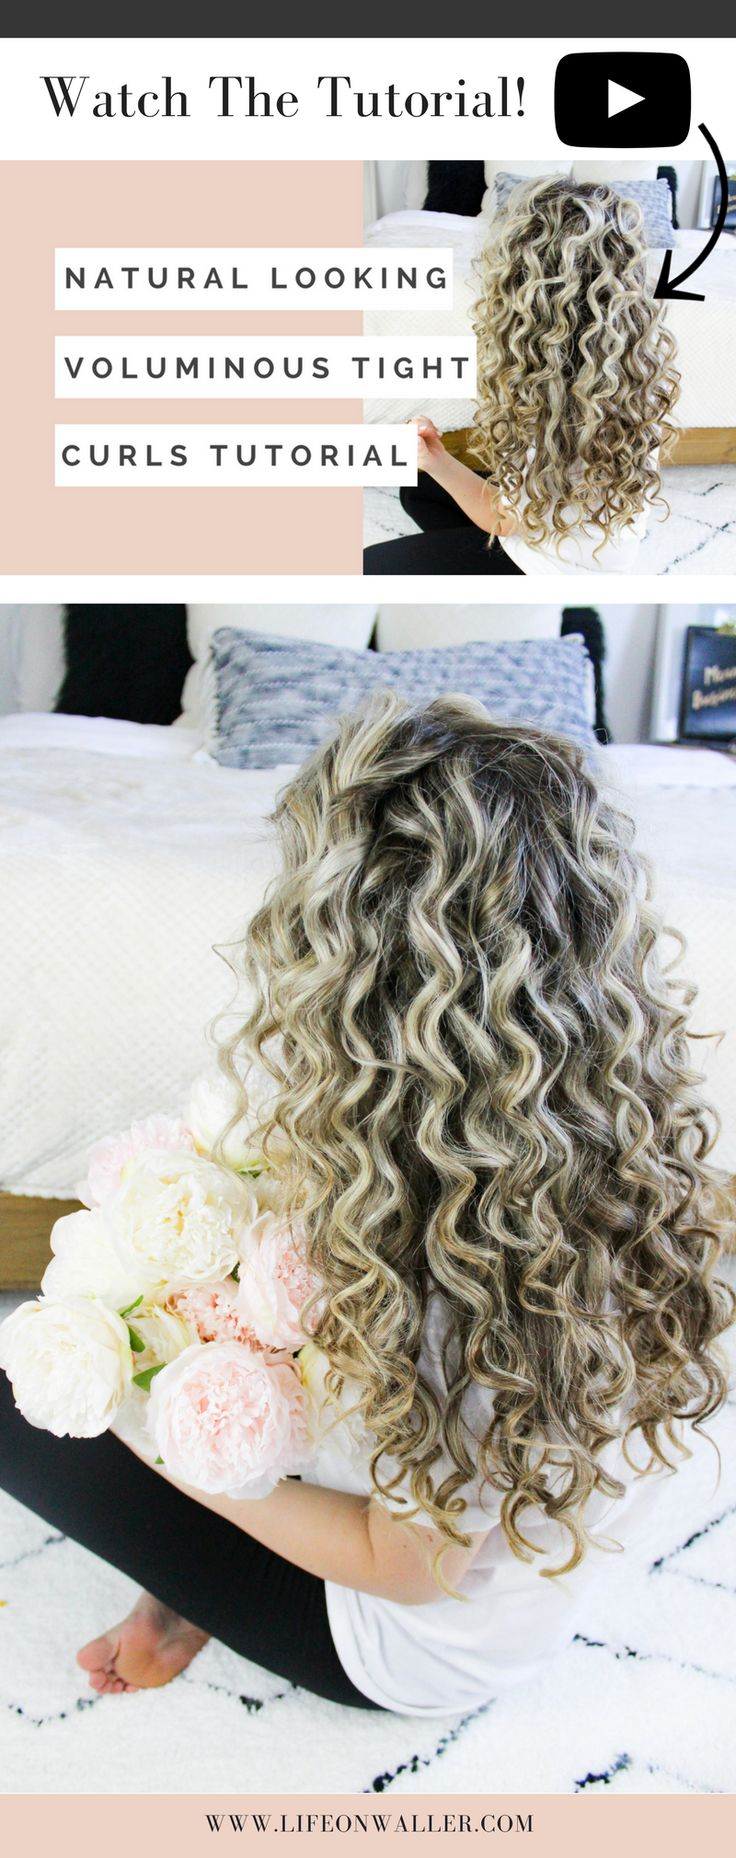 natural looking voluminous tight curls hair tutorial. Perfect texture and bounce to your curls!